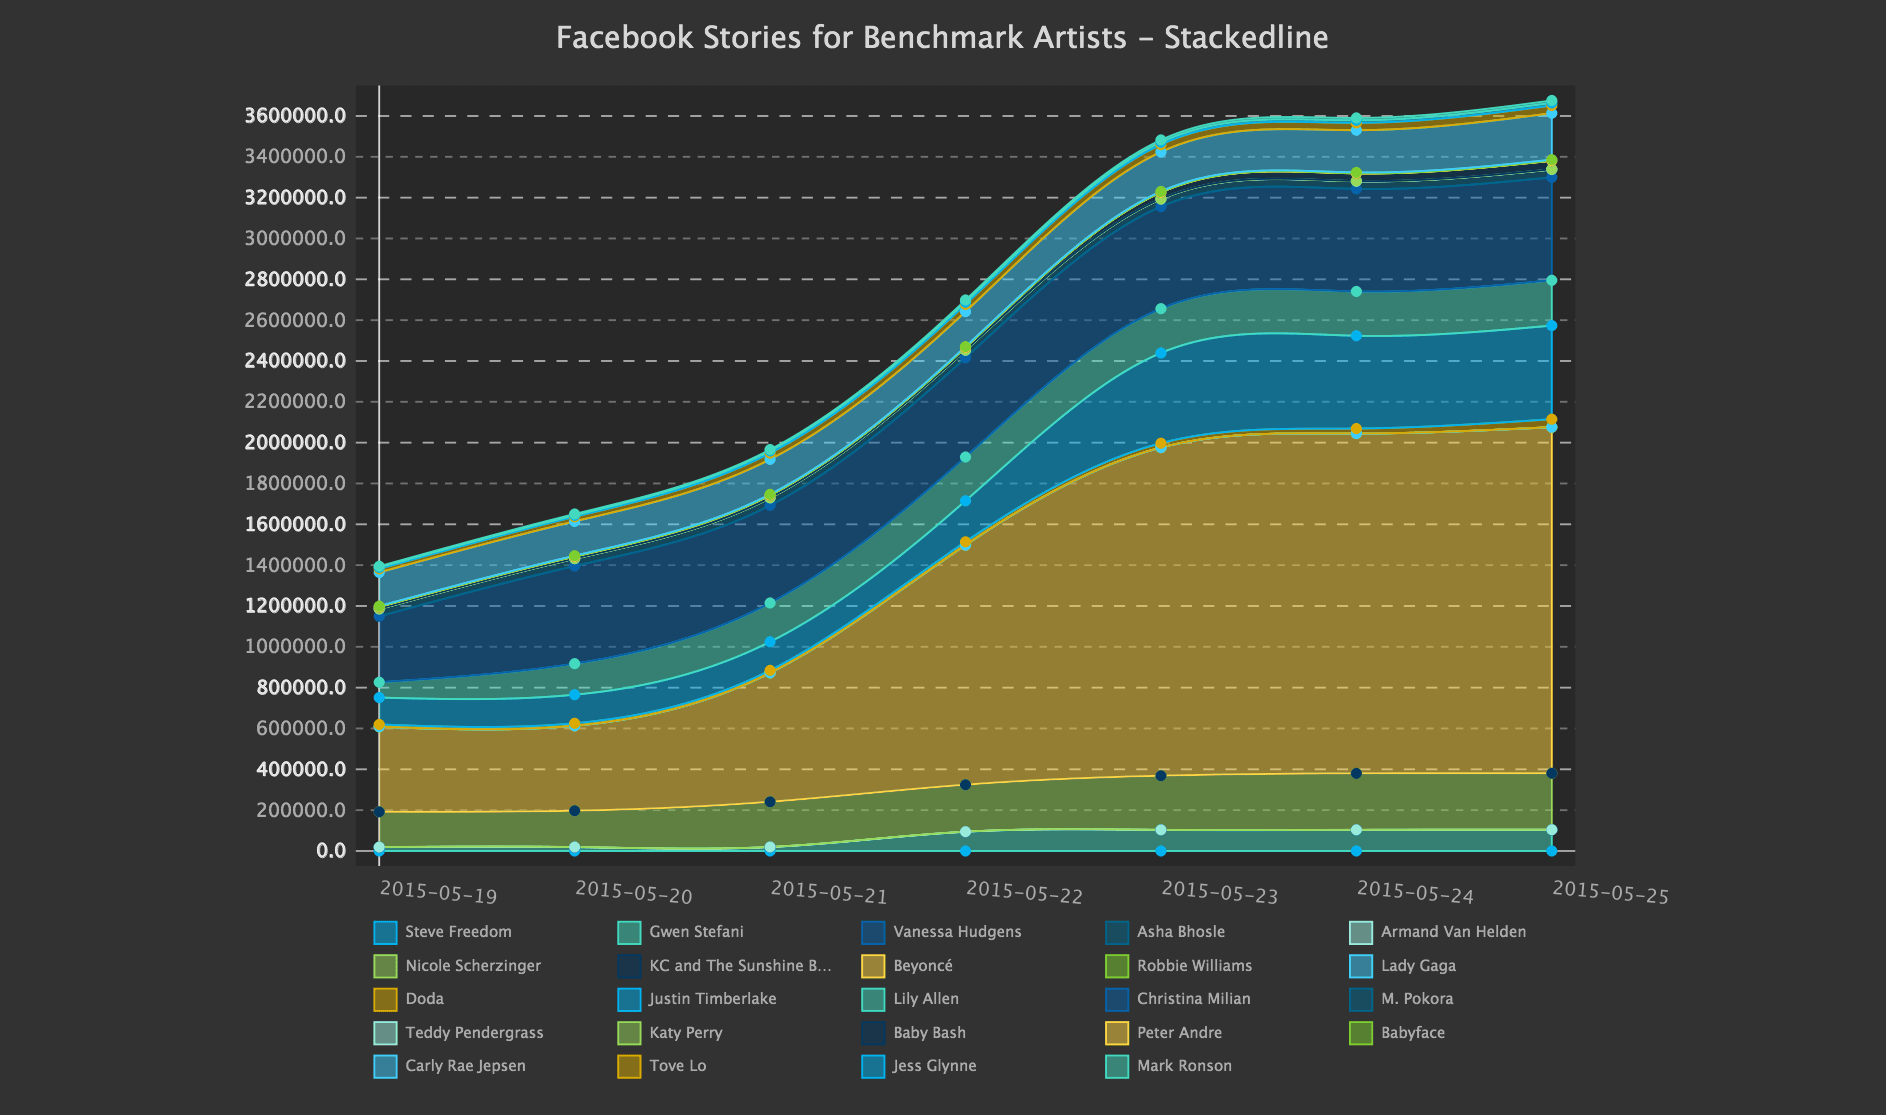 Social Media Metrics - Facebook Stories for Benchmark Artists, 1 Week